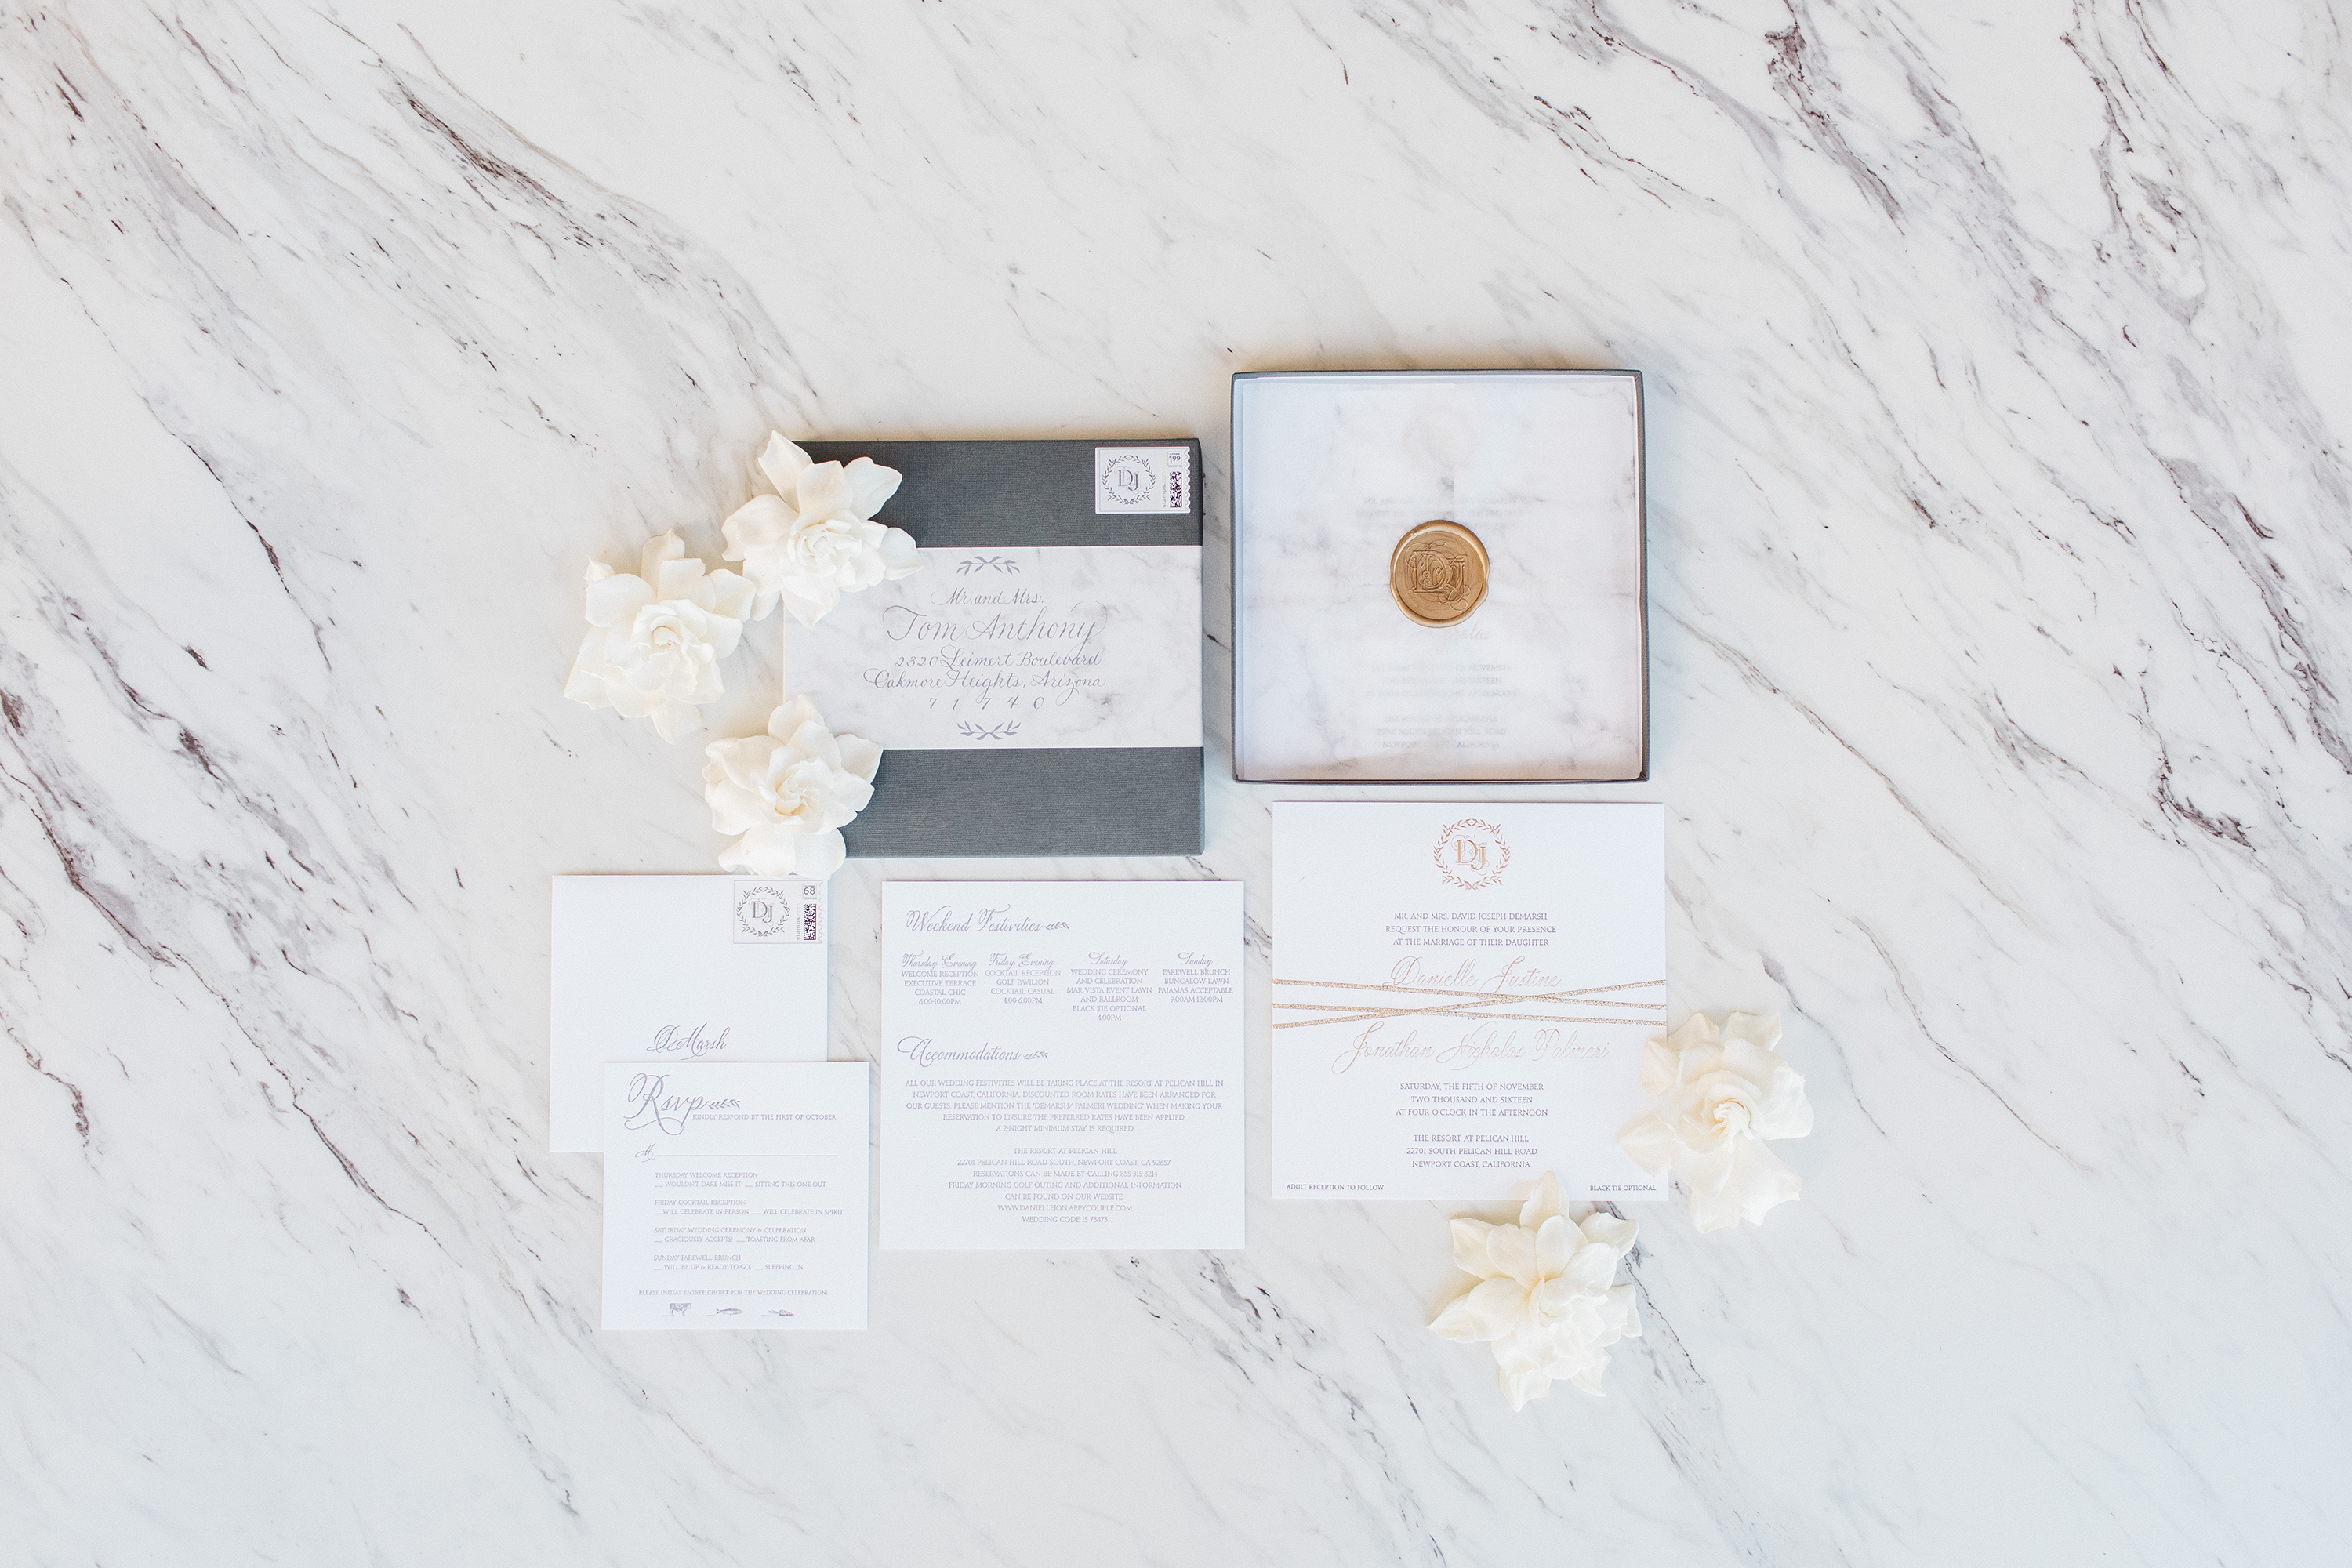 slate gray vintage invite with marble details